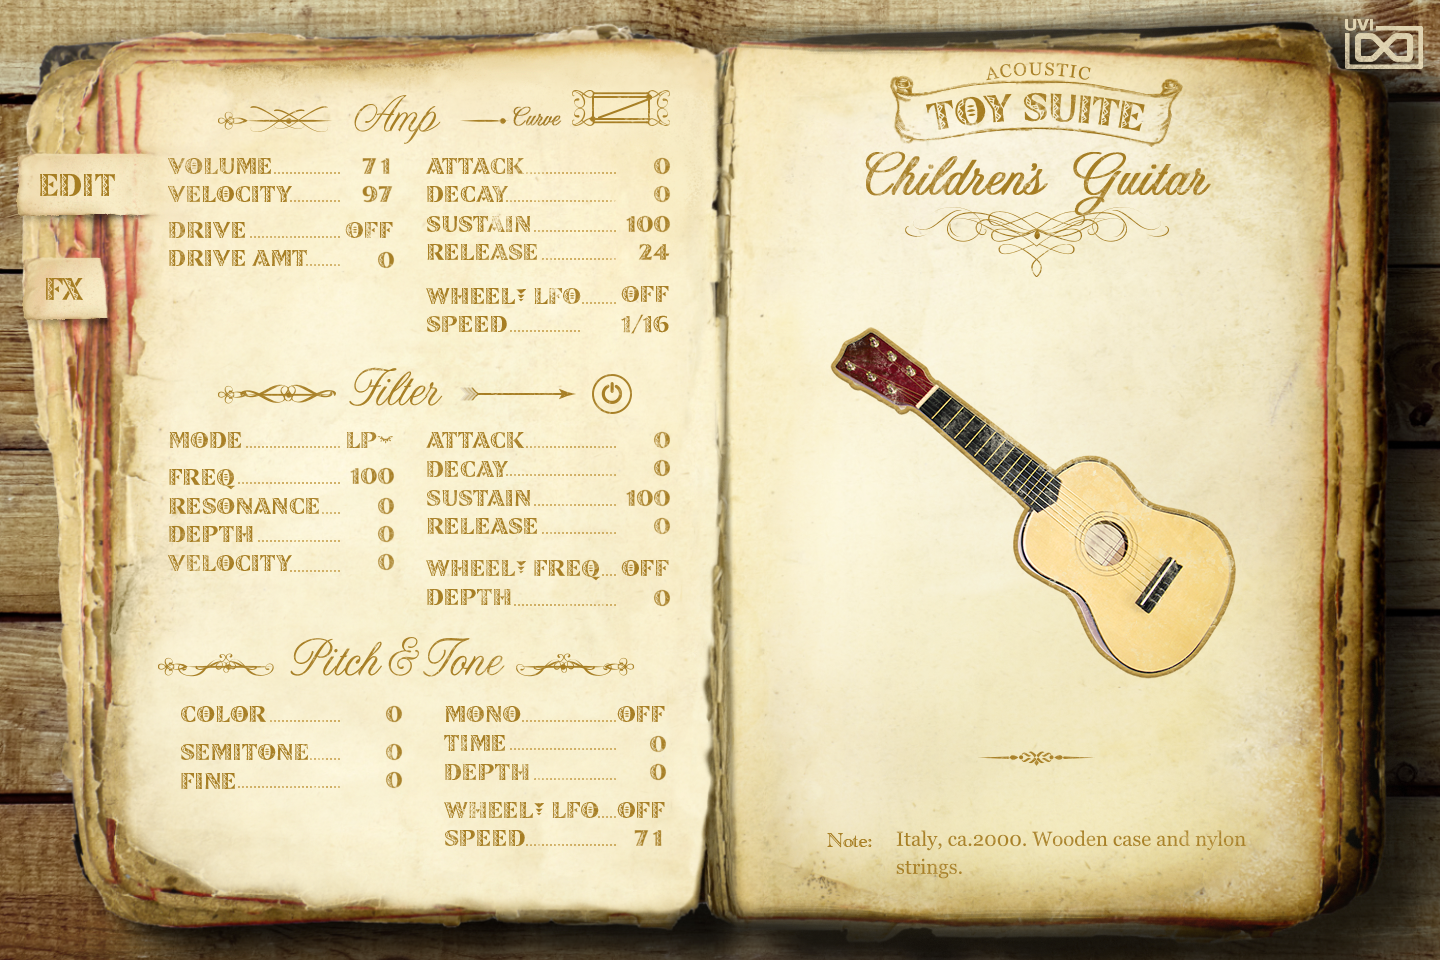 UVI Toy Suite GUI | Children Guitar